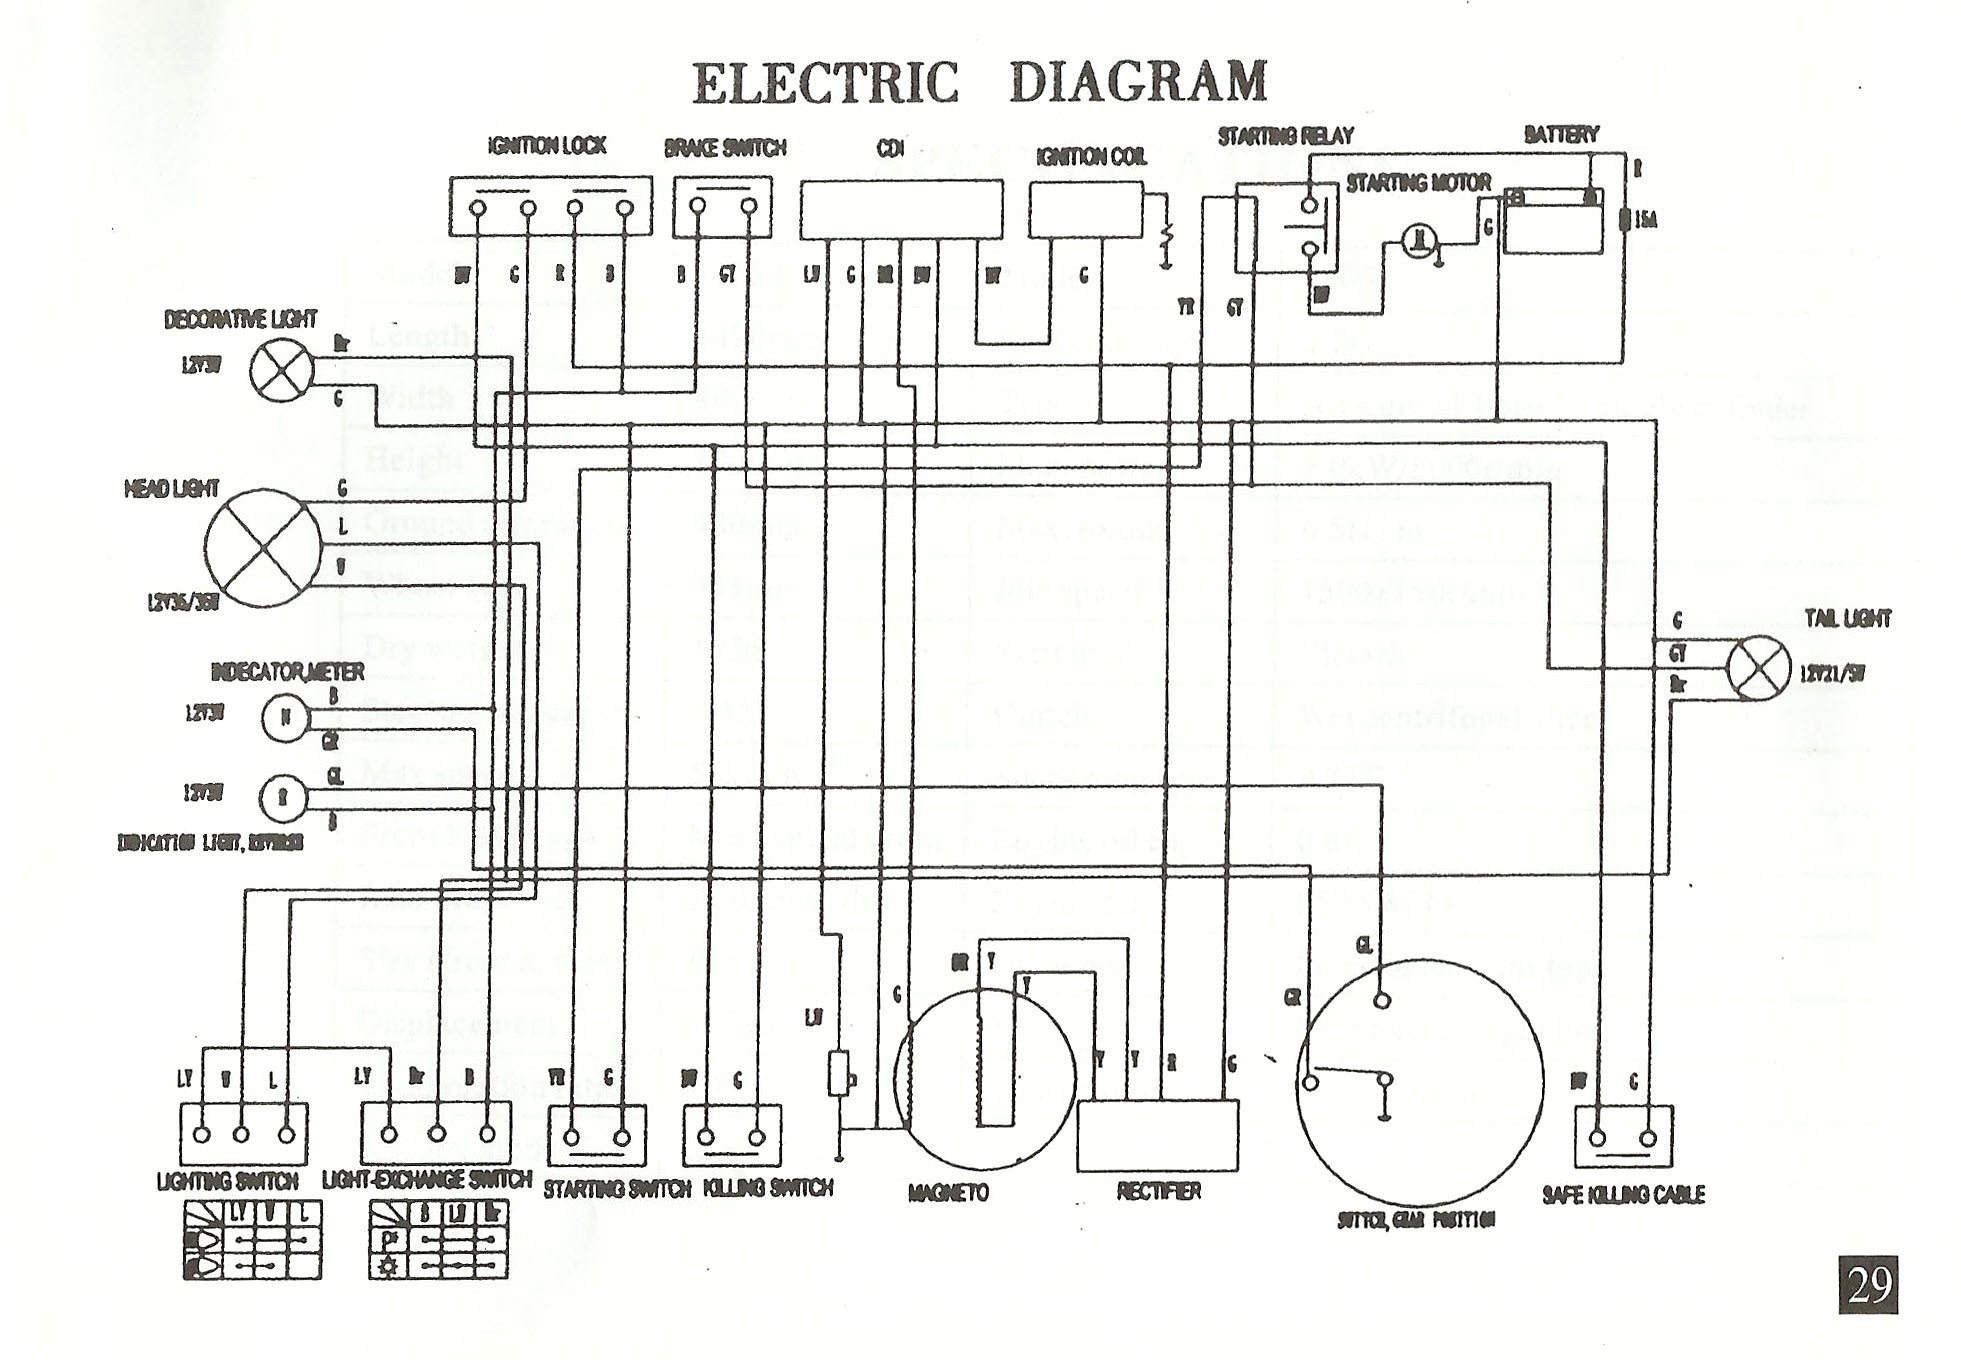 Dune Buggy Wiring Diagram | Wiring Diagram on